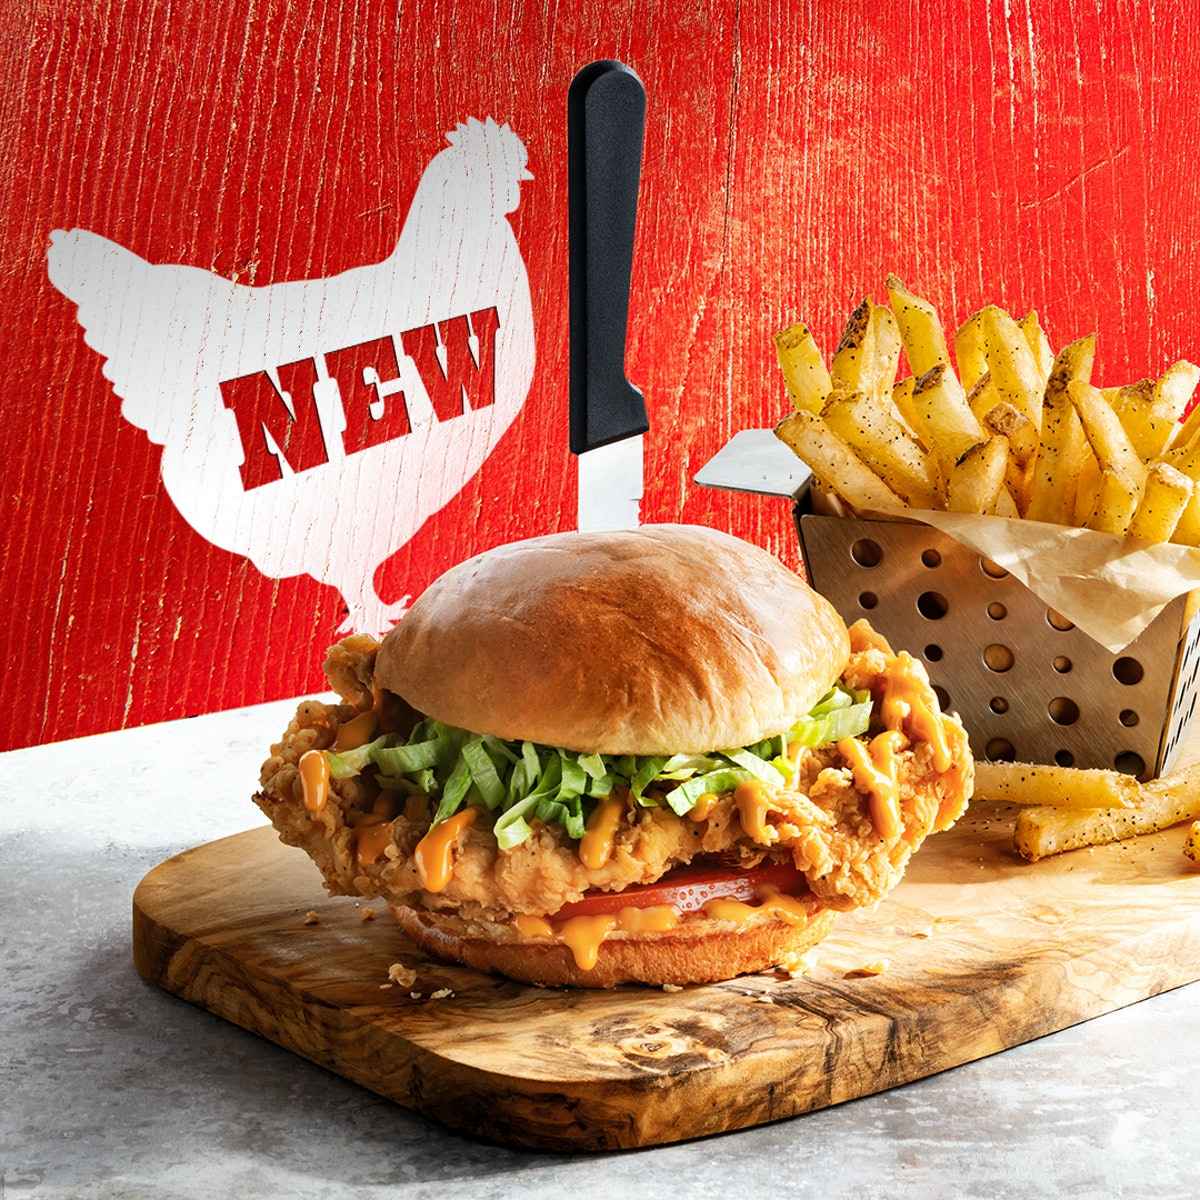 Chili's Chicken Sandwich is now available for a limited time.